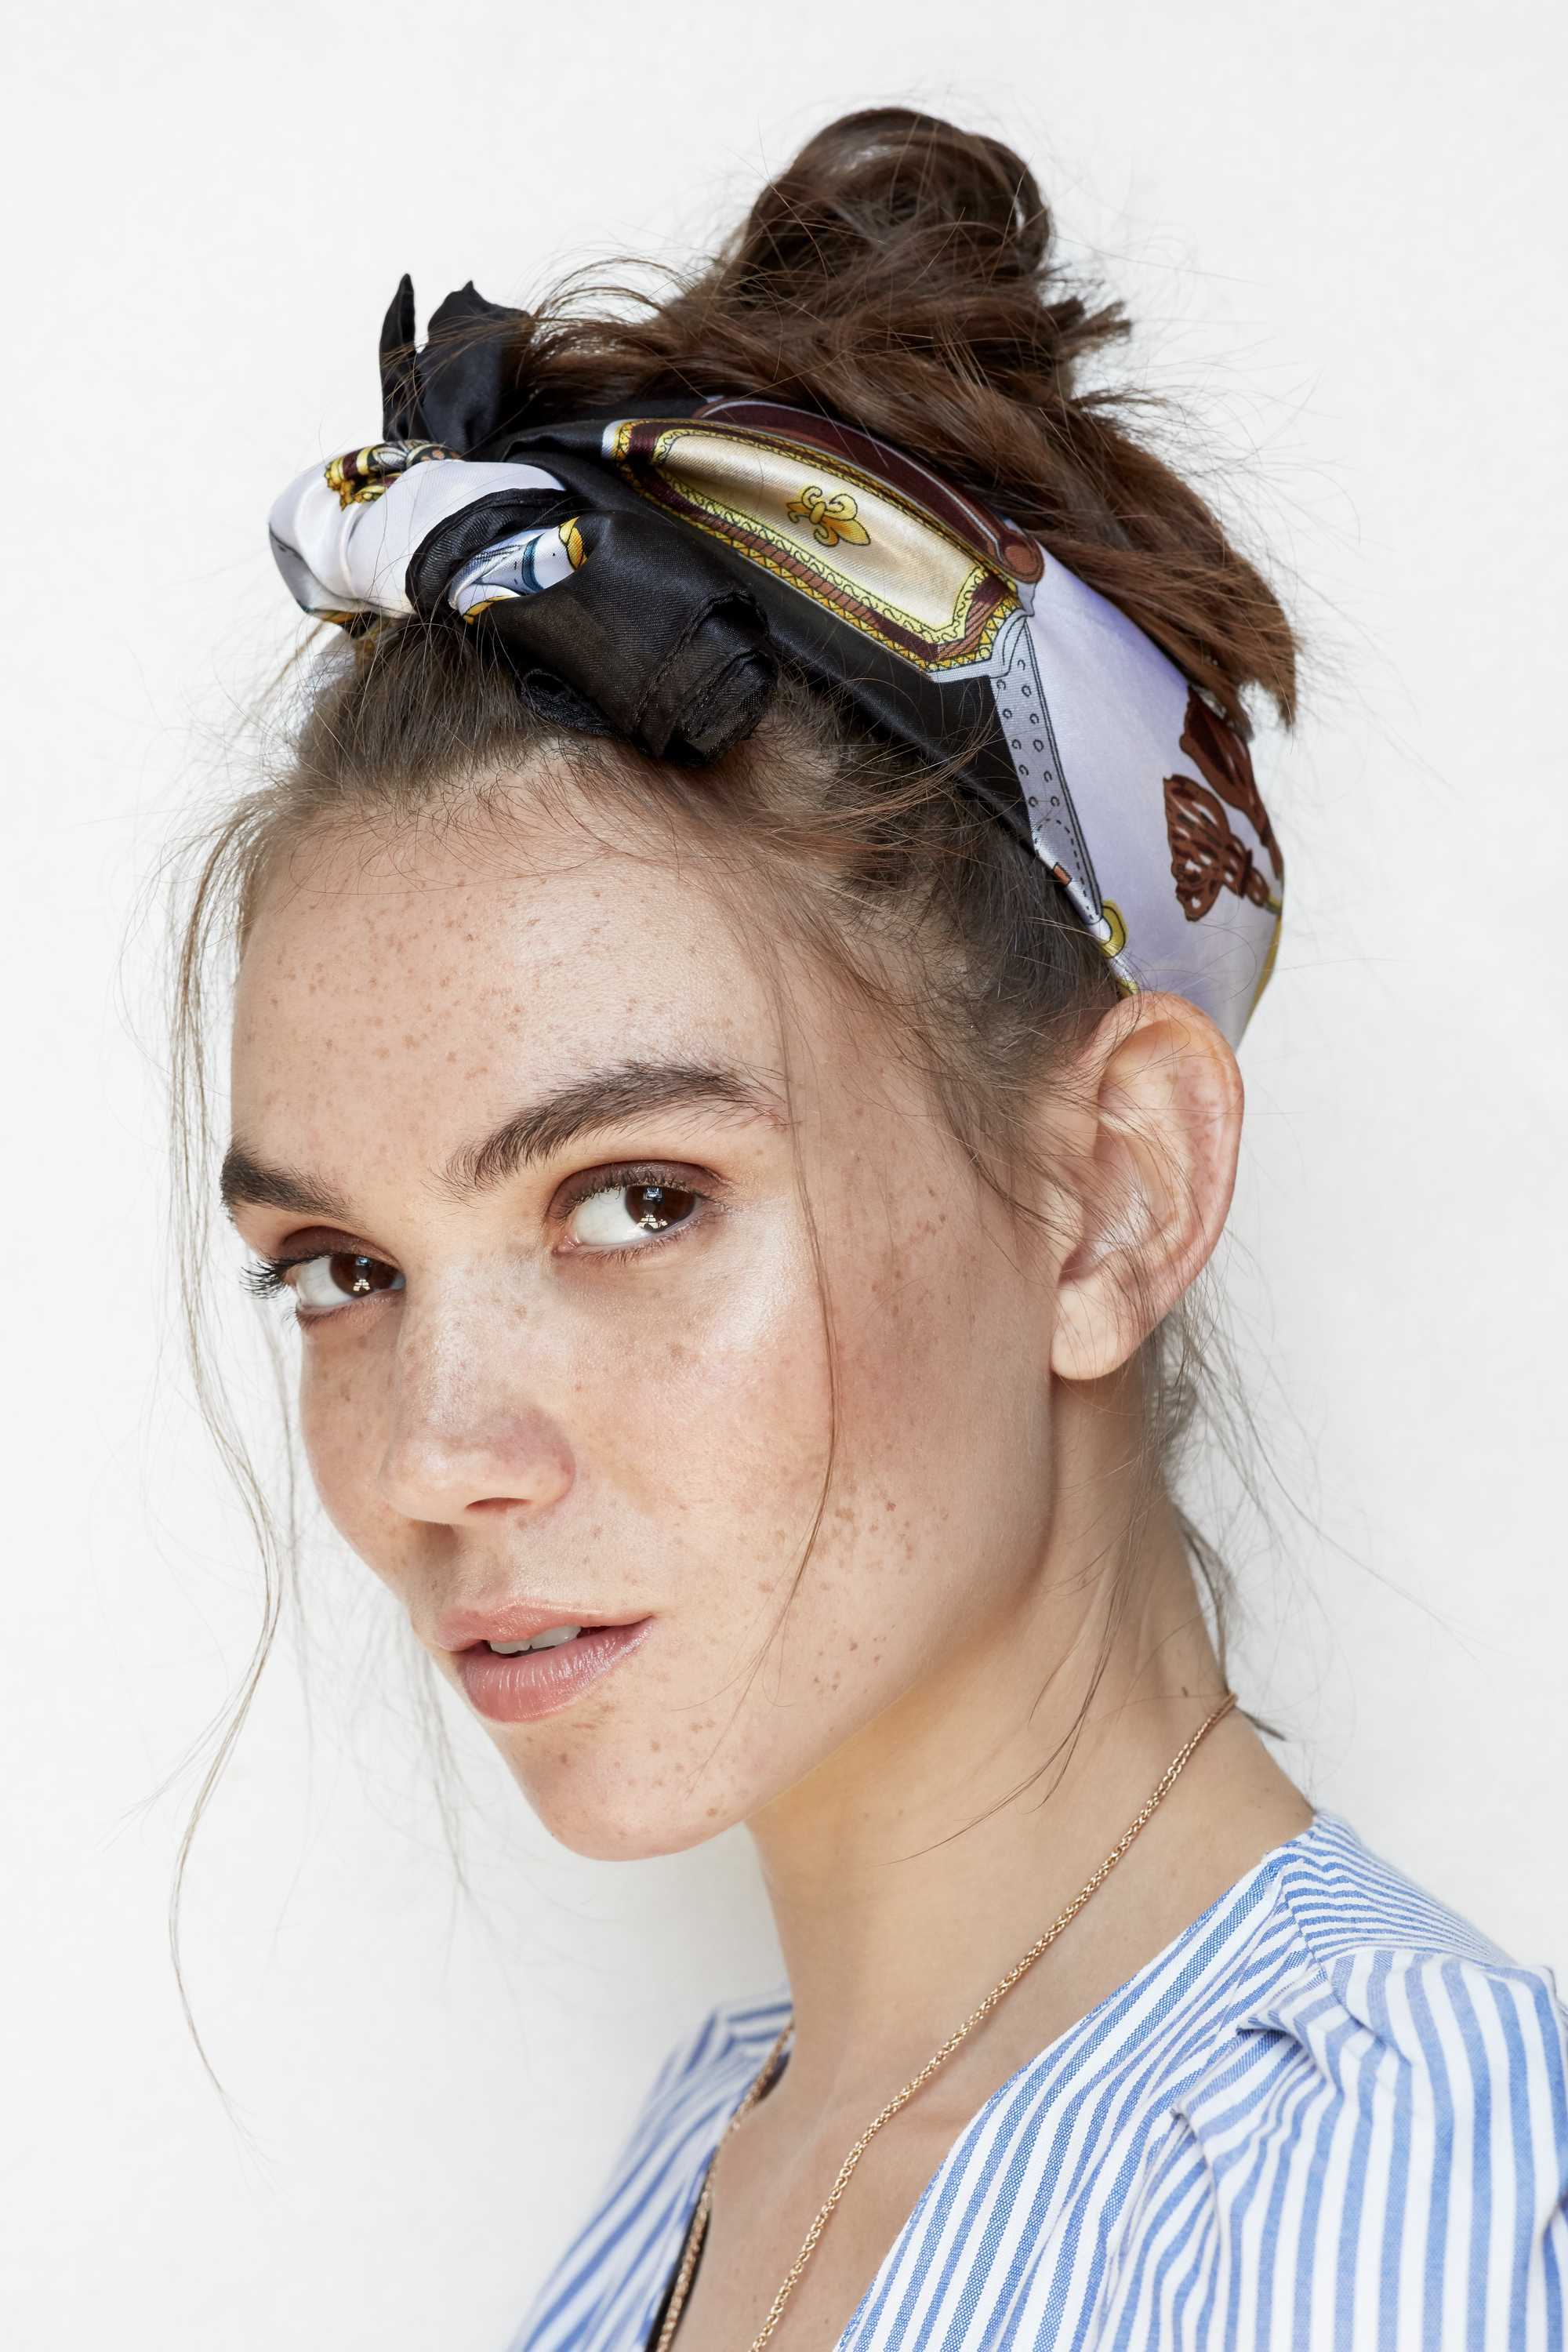 close up head shot of a freckled brunette model with her hair in a messy bun updo with a printed blue and gold scarf wrapped around it tied in a bow